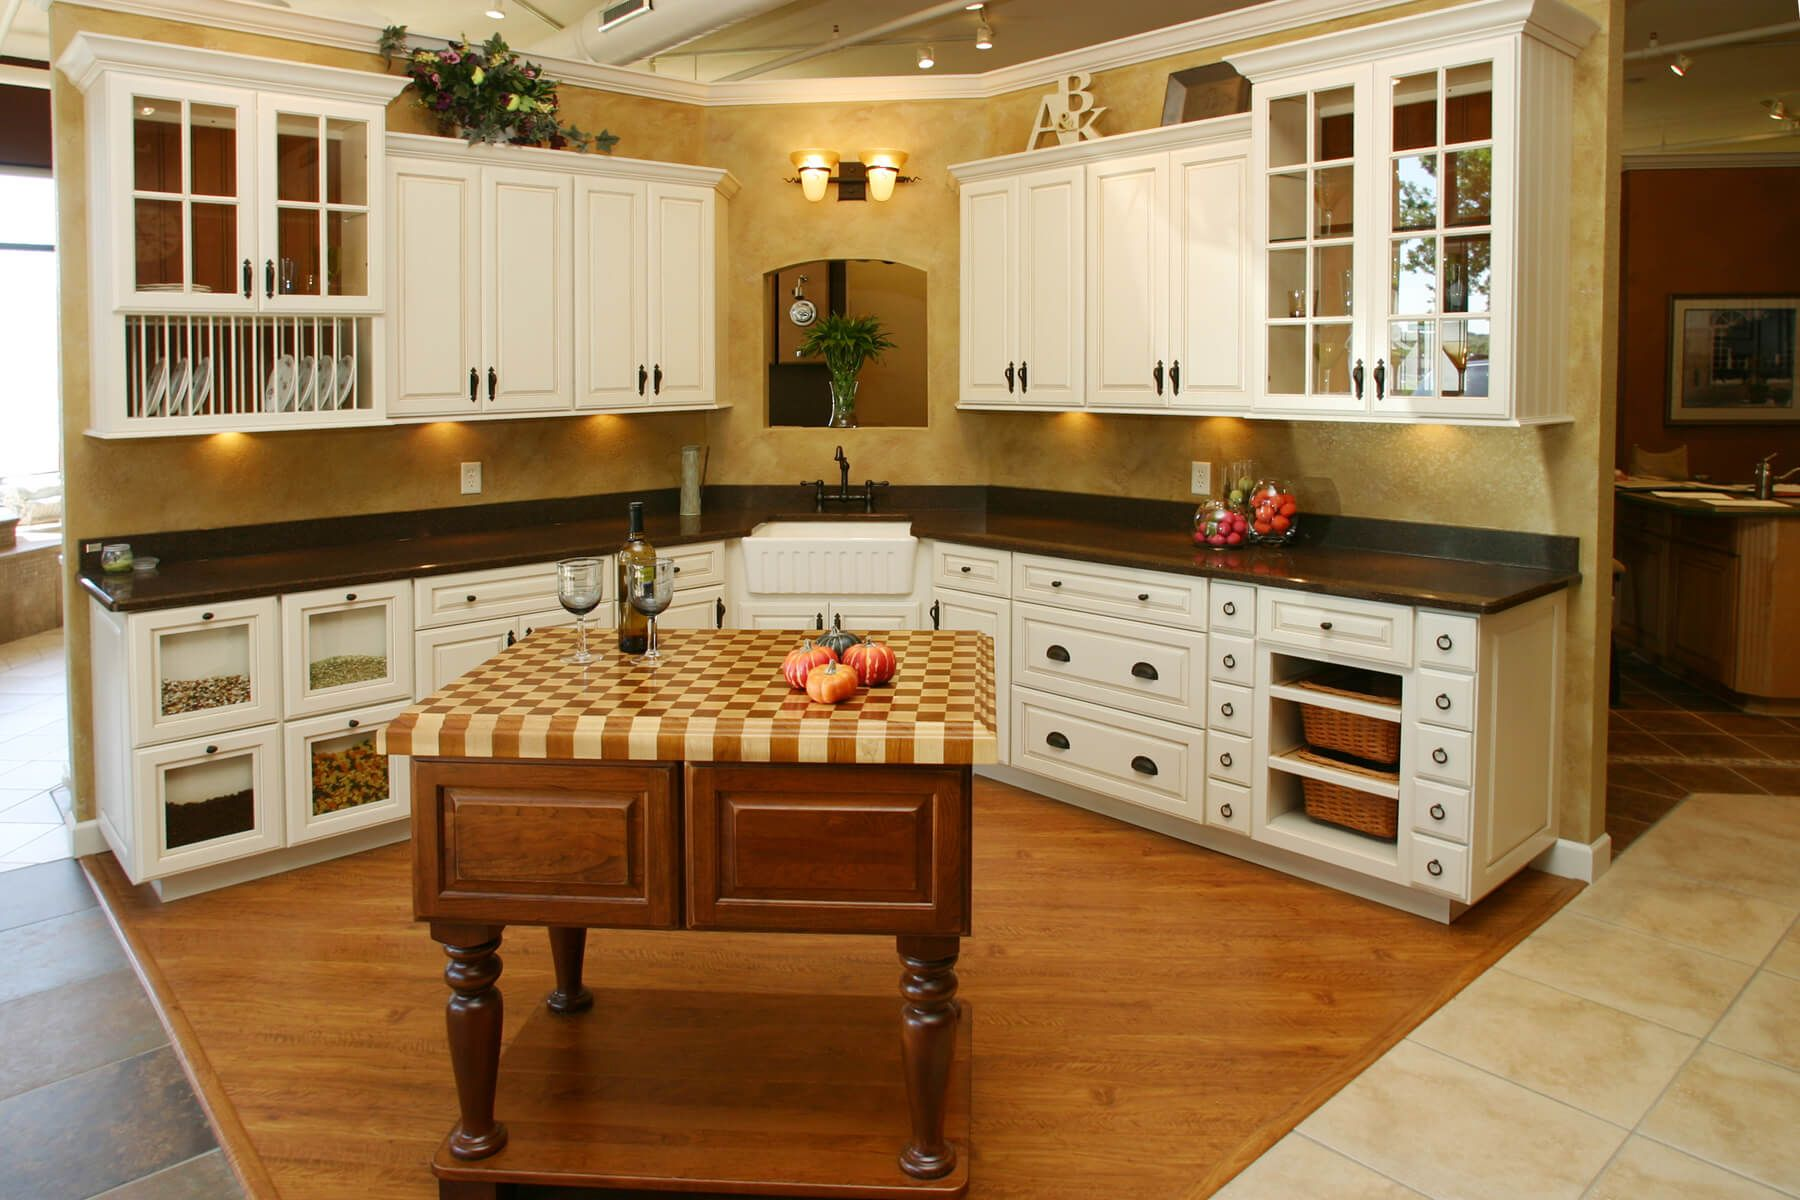 Pin By Laura Punturi On Home Decor Simple Kitchen Cabinets Wood Kitchen Simple Kitchen